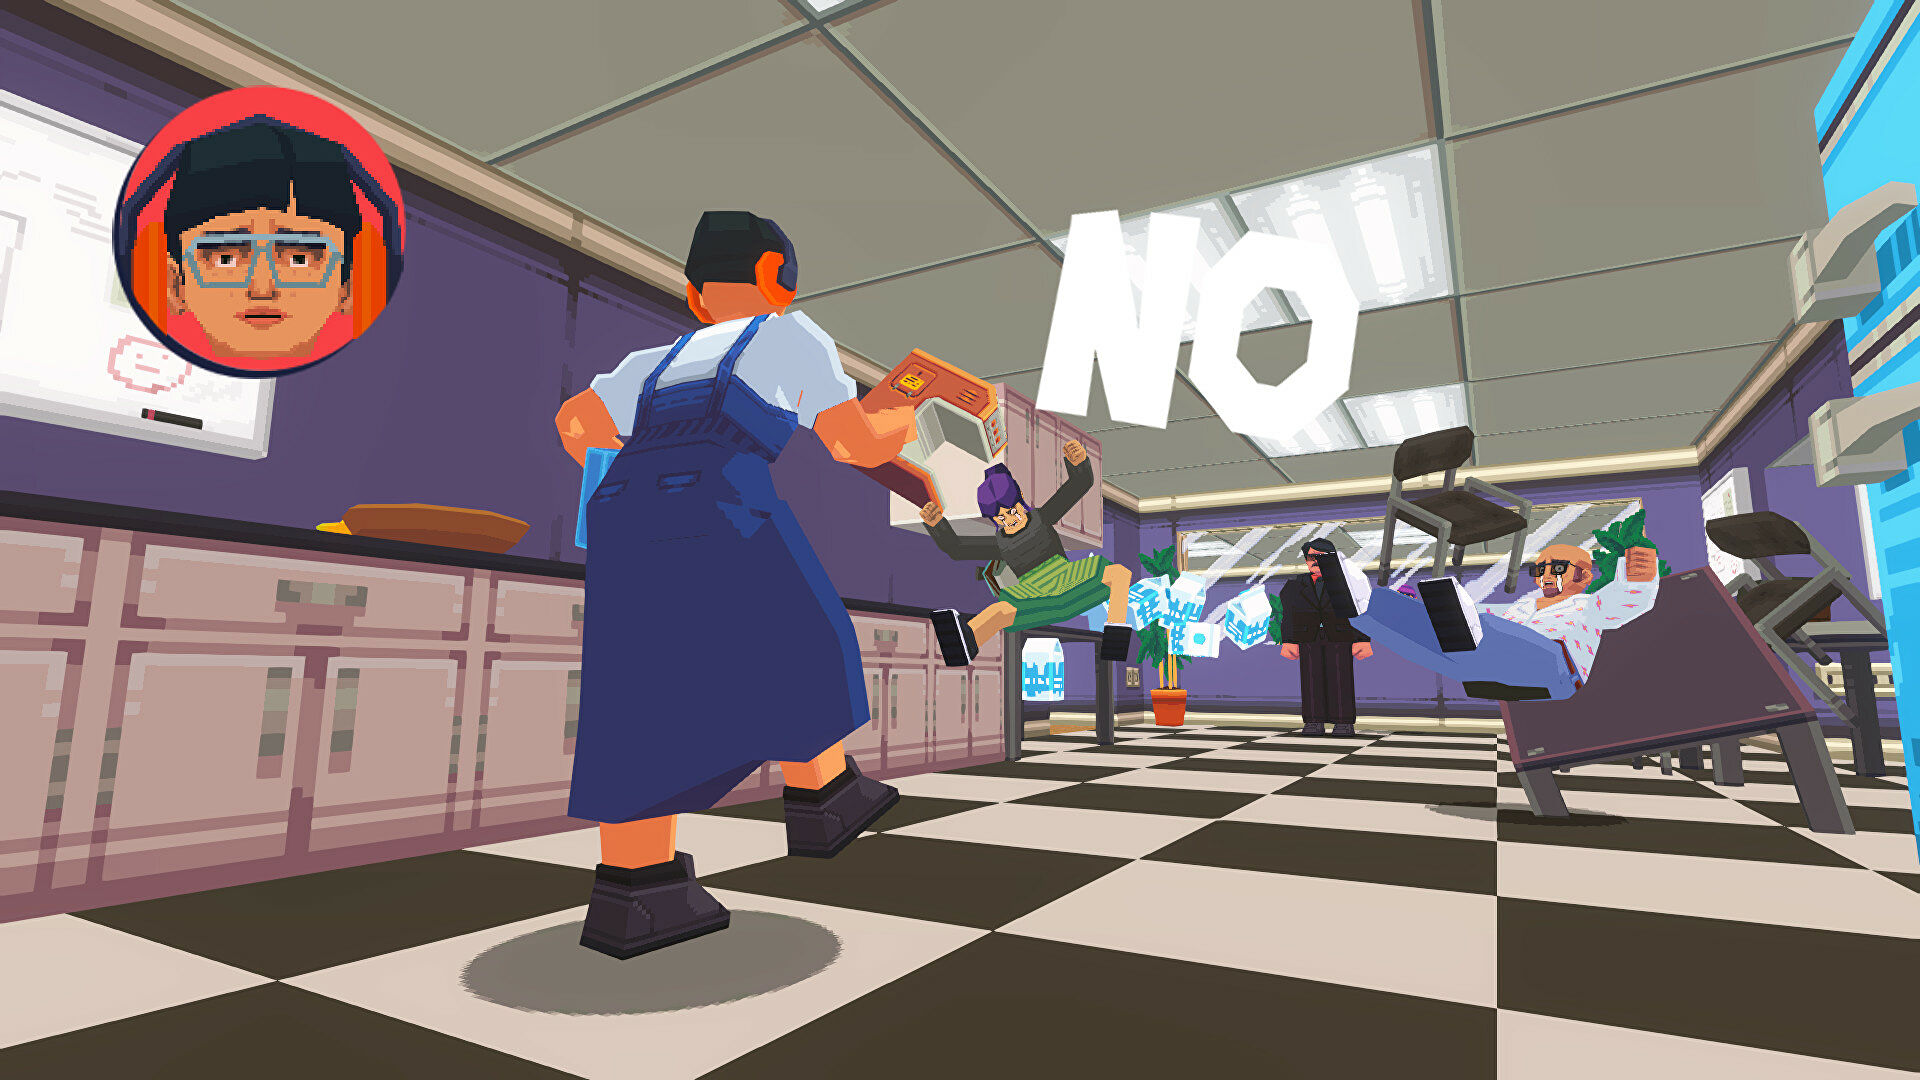 Cathartic office beat 'em up Say No! More is out now and looks rad